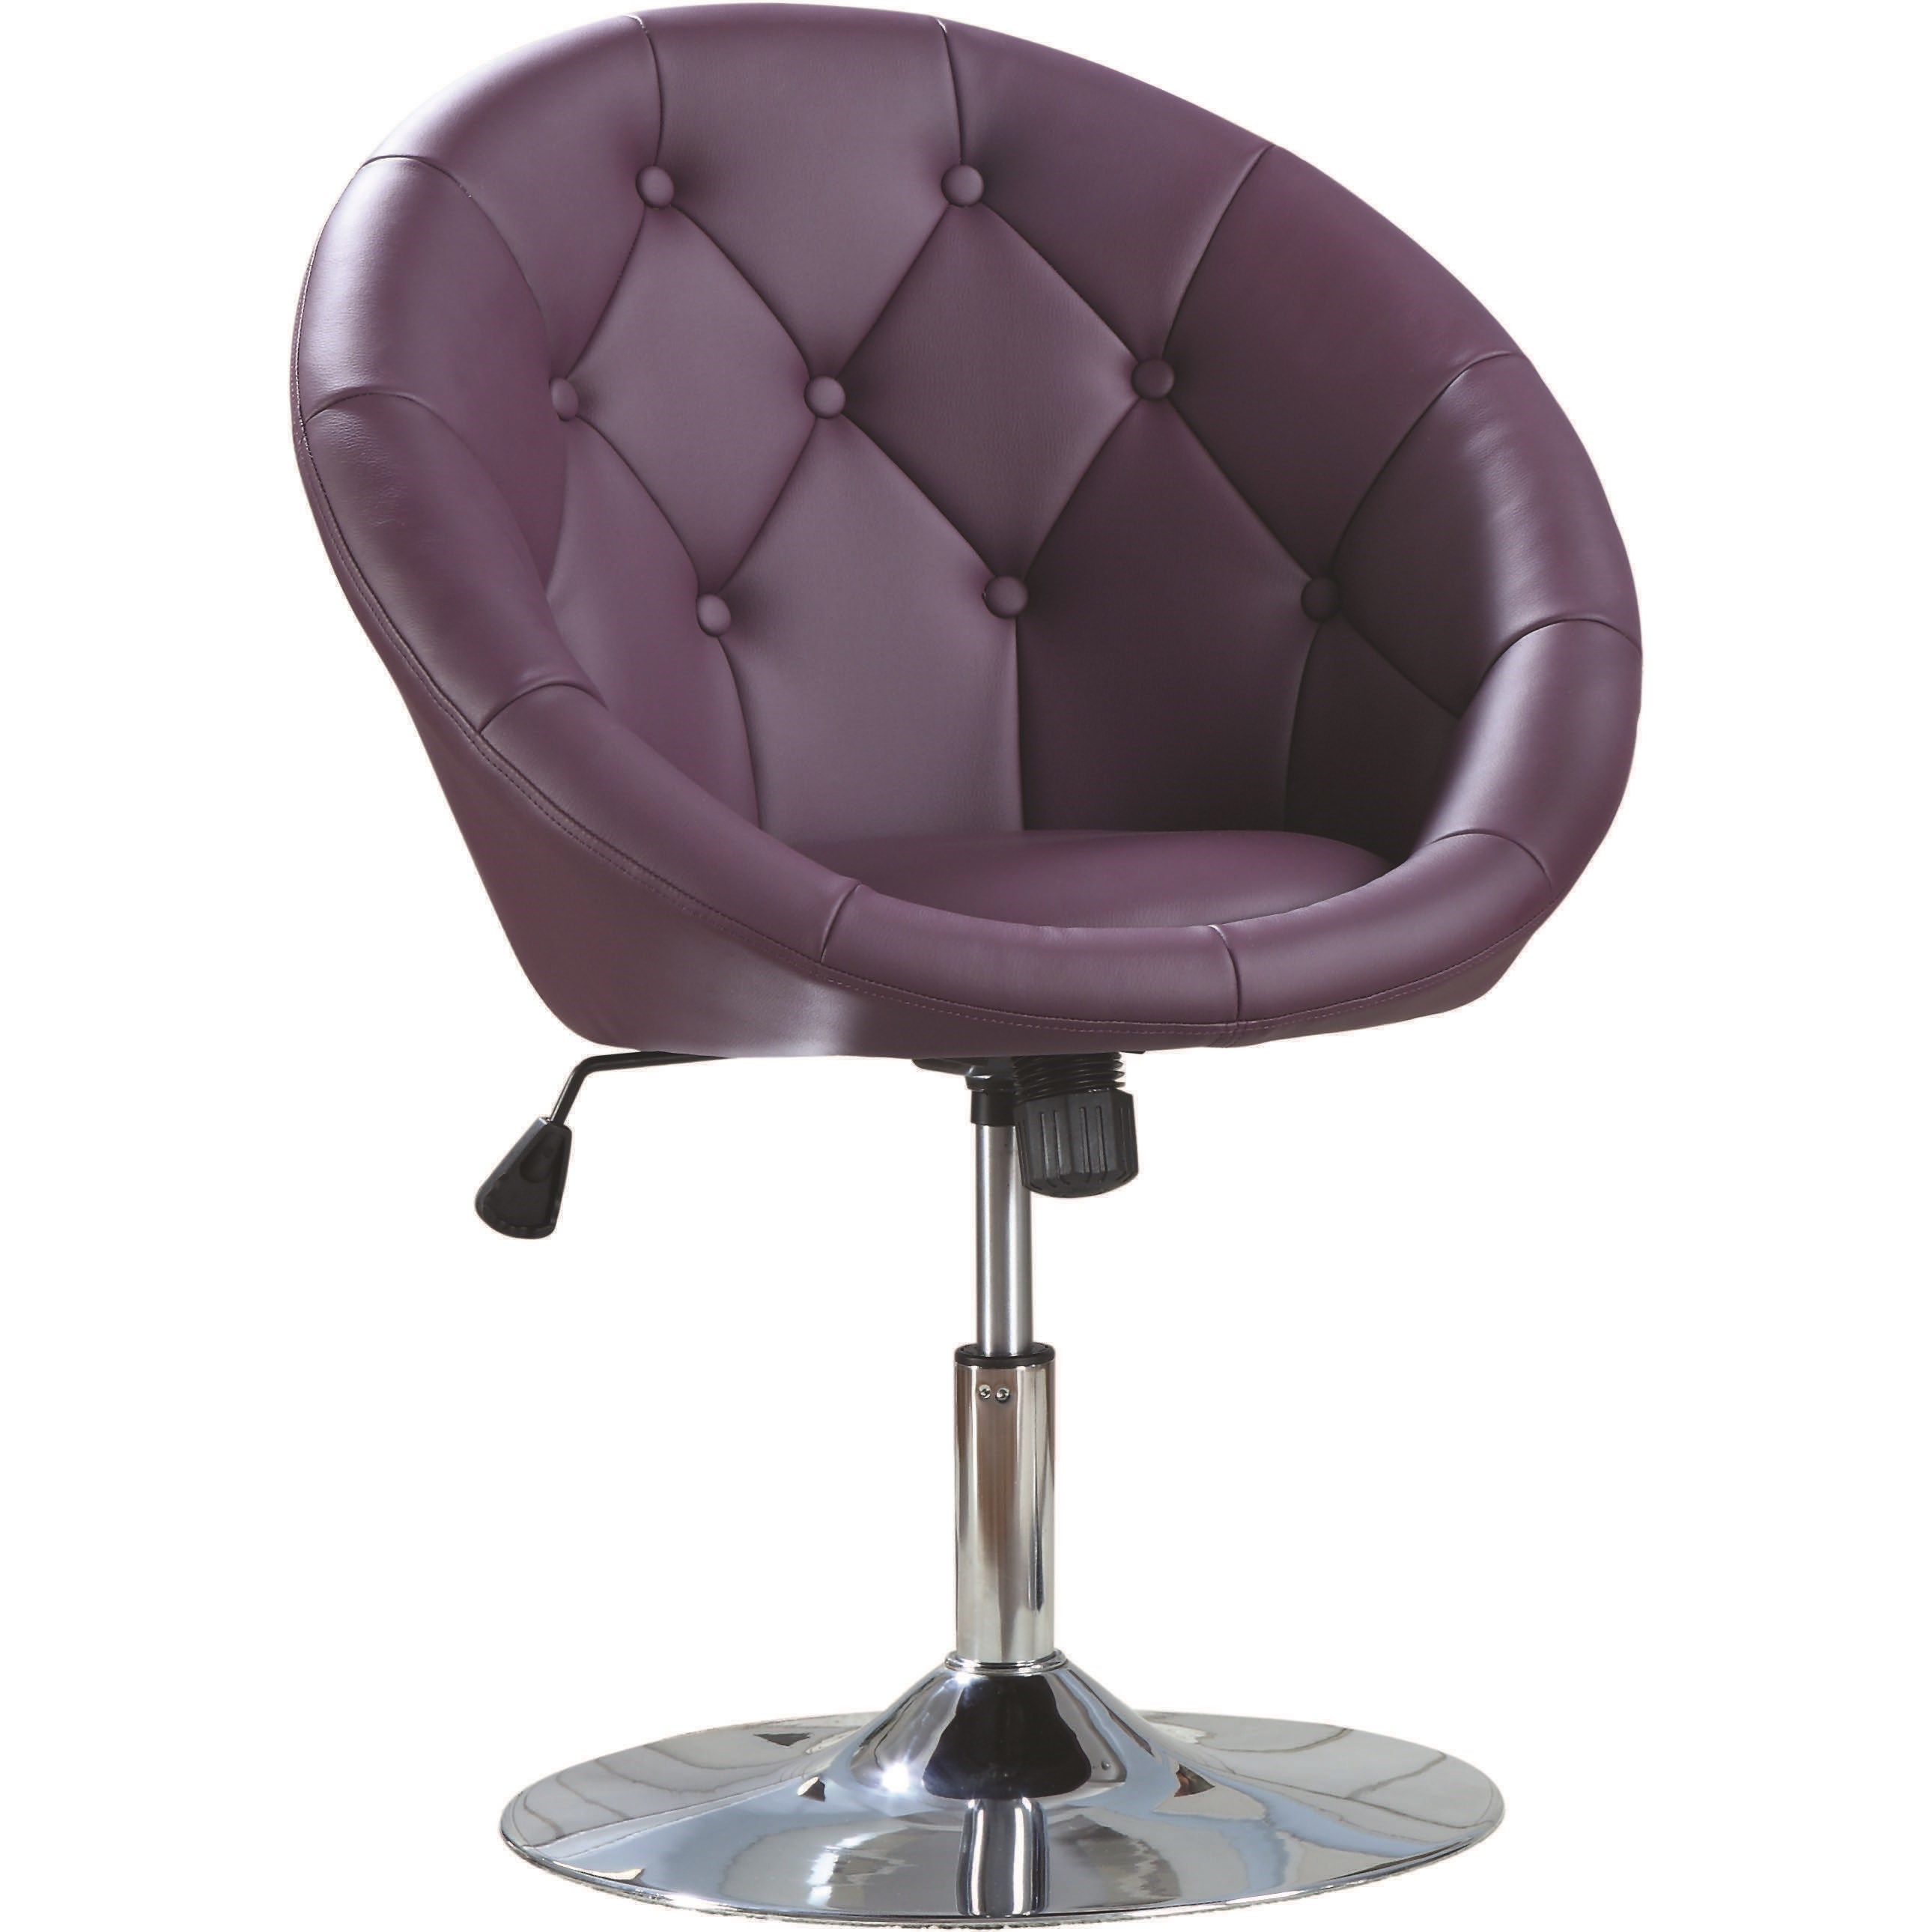 Coaster dining chairs and bar stools swivel chair purple item number 102581